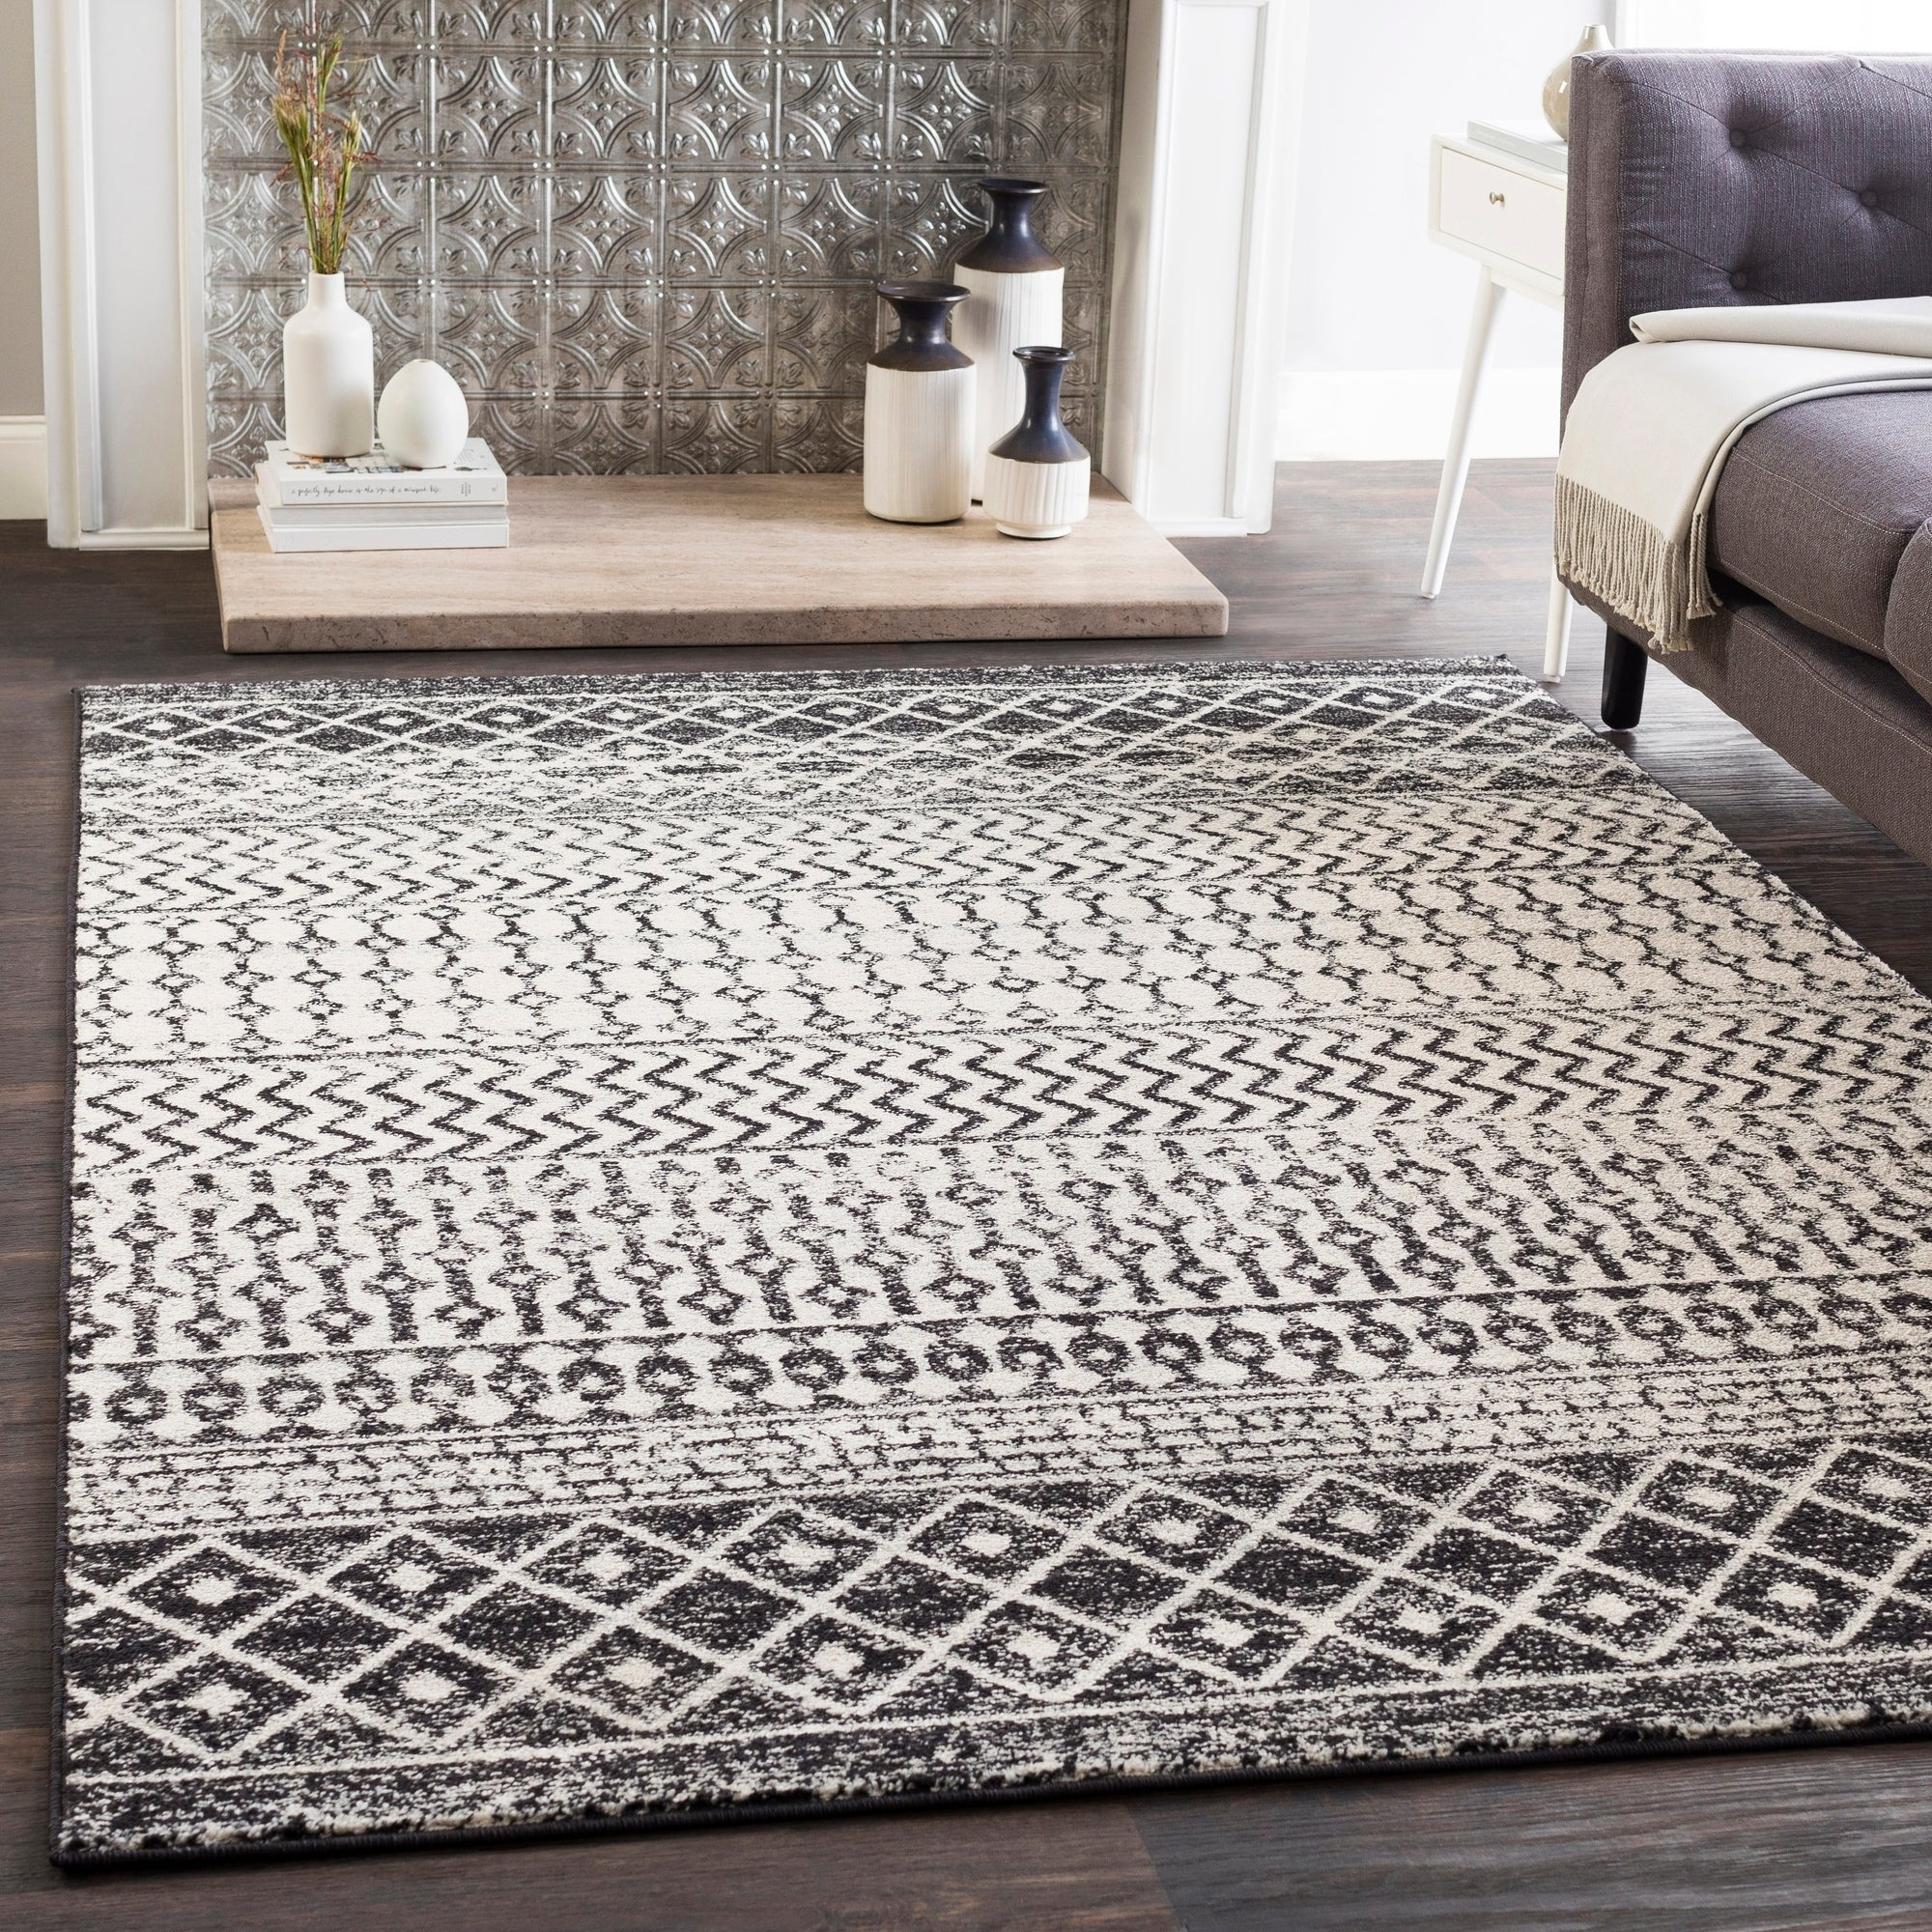 E Black White Bohemian Area Rug 9 3 X 12 6